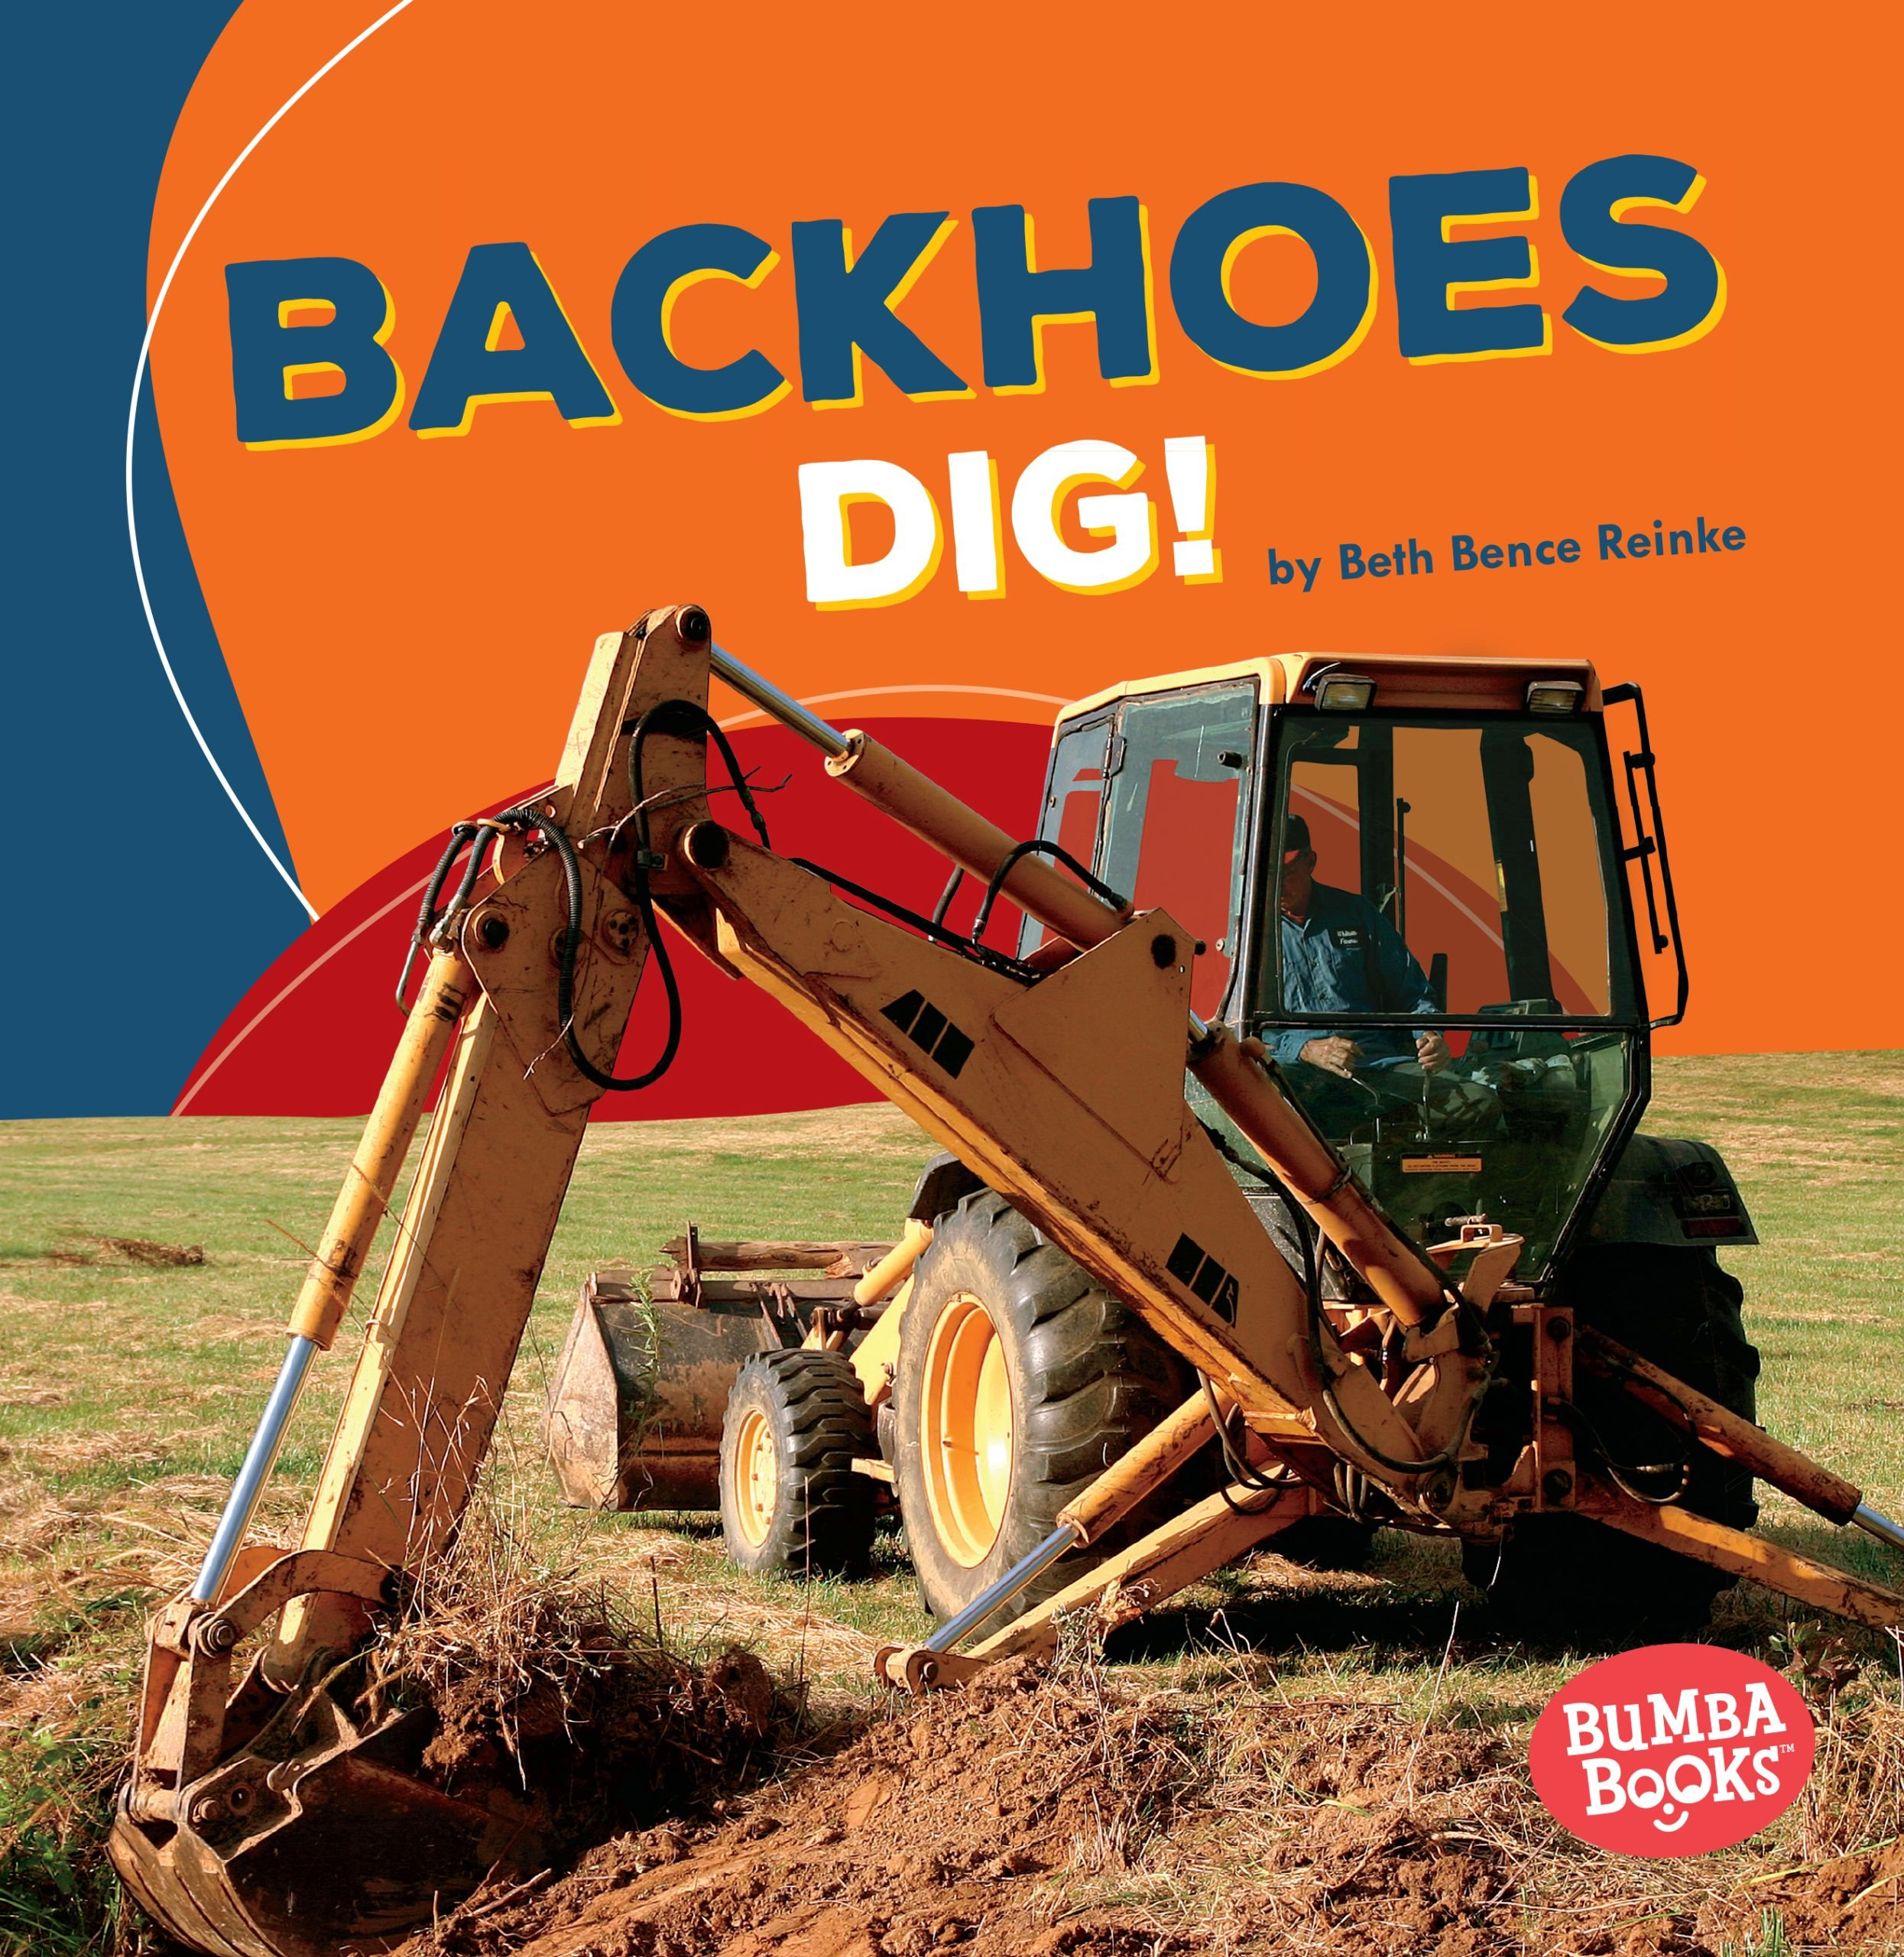 Backhoes Dig! (Bumba Books Construction Zone) PDF